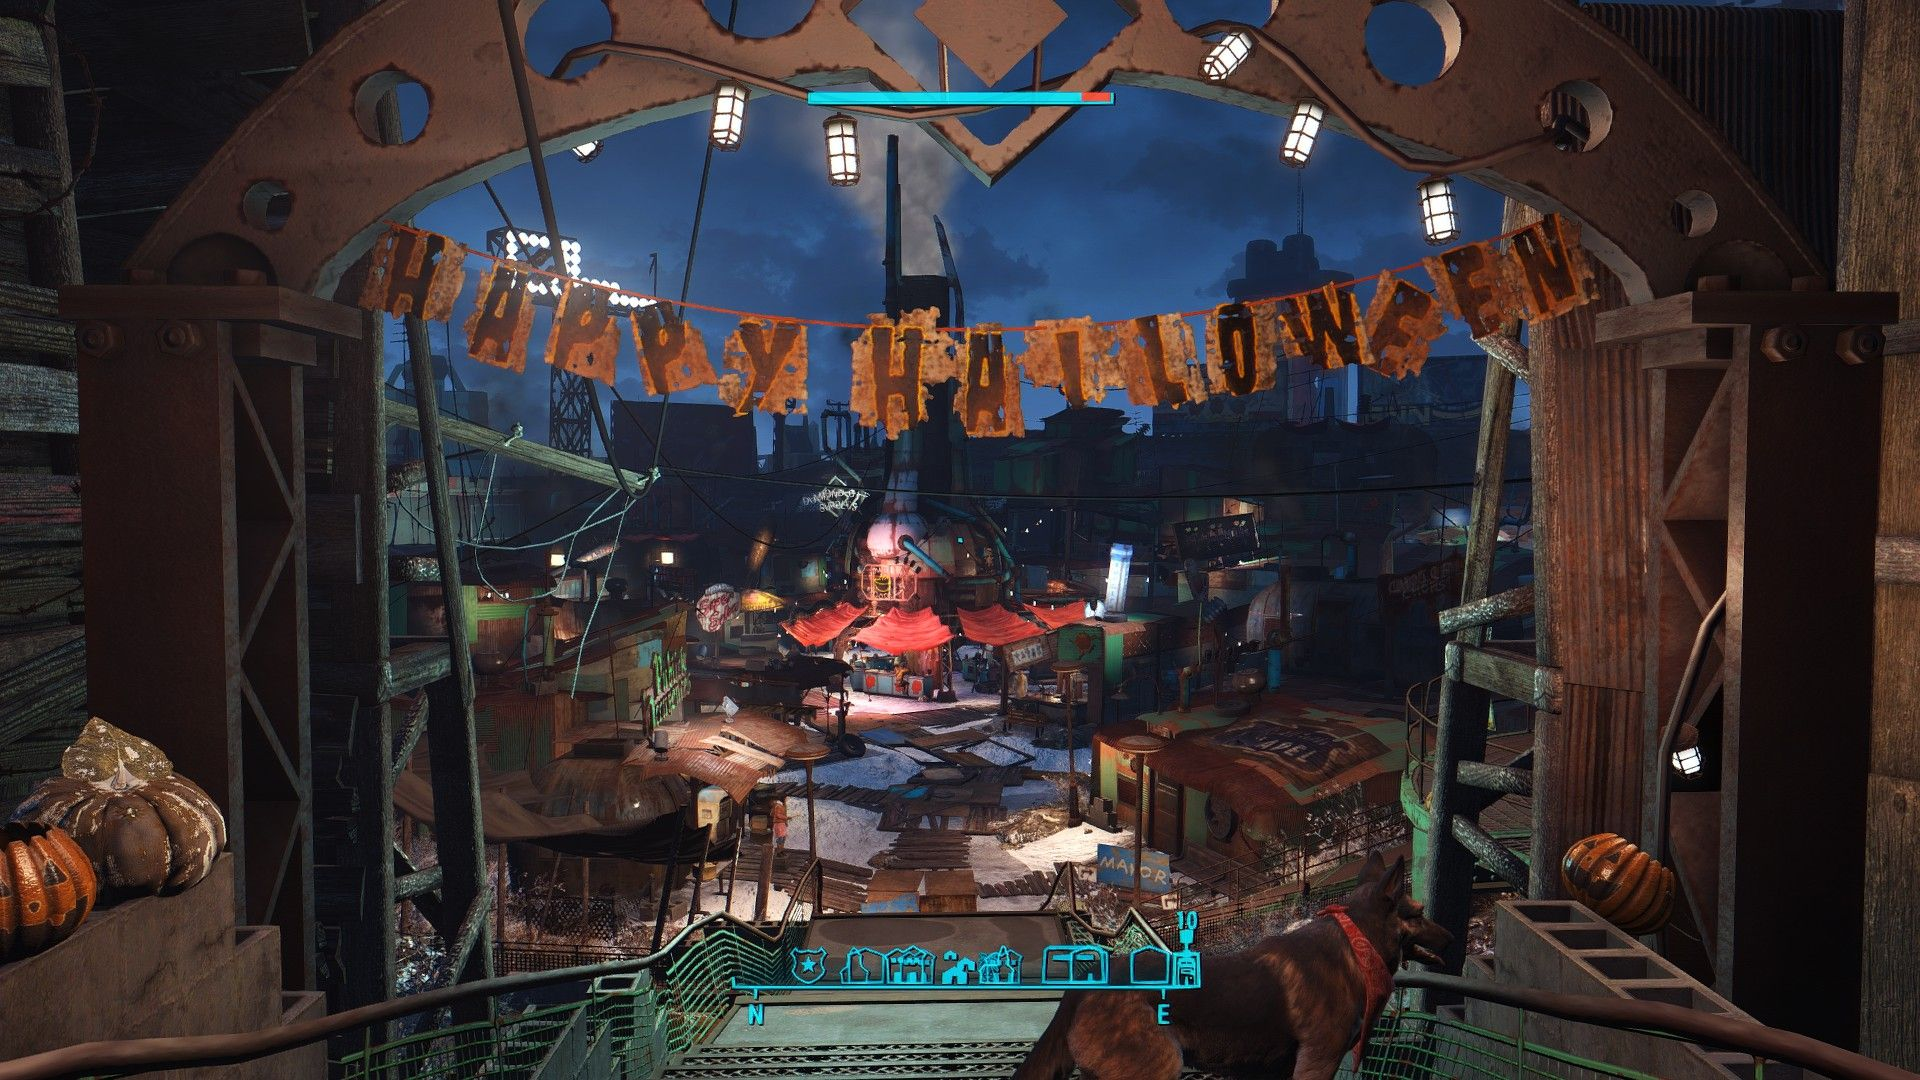 You know the Christmas decorations in Diamond City Apparently 1920x1080